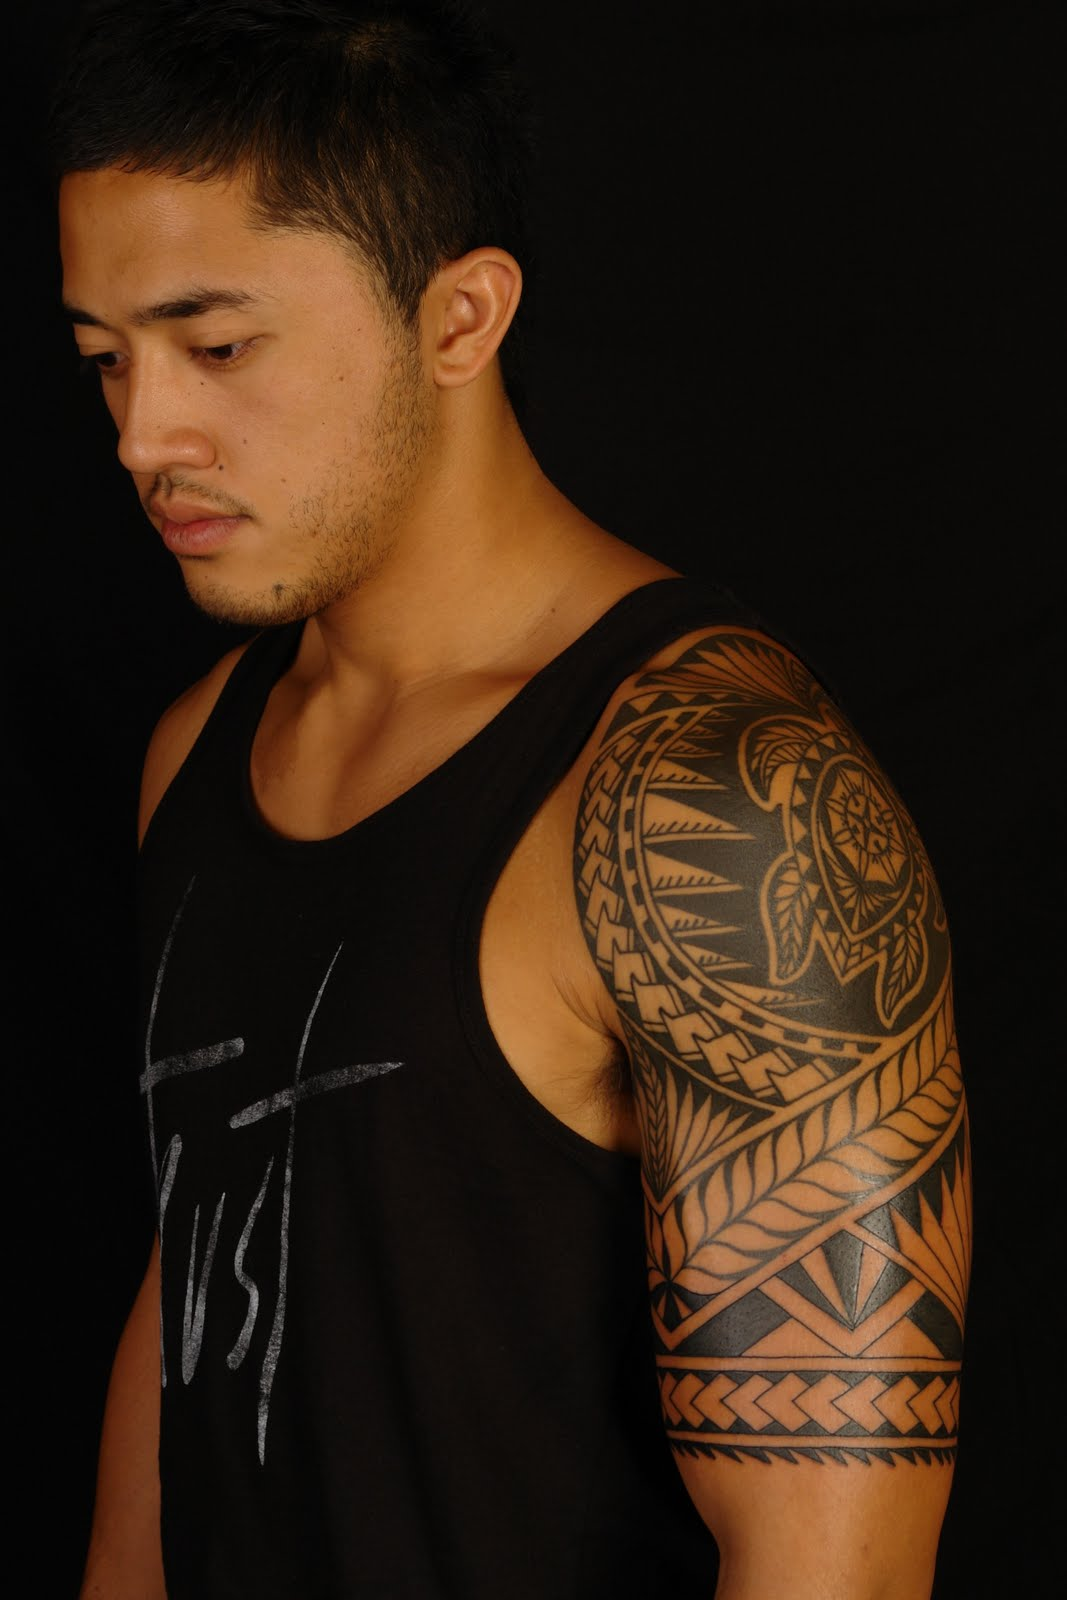 Body Art World Tattoos Maori Tattoo Art And Traditional: Body Art World Tattoos: Maori Tattoo Art And Traditional